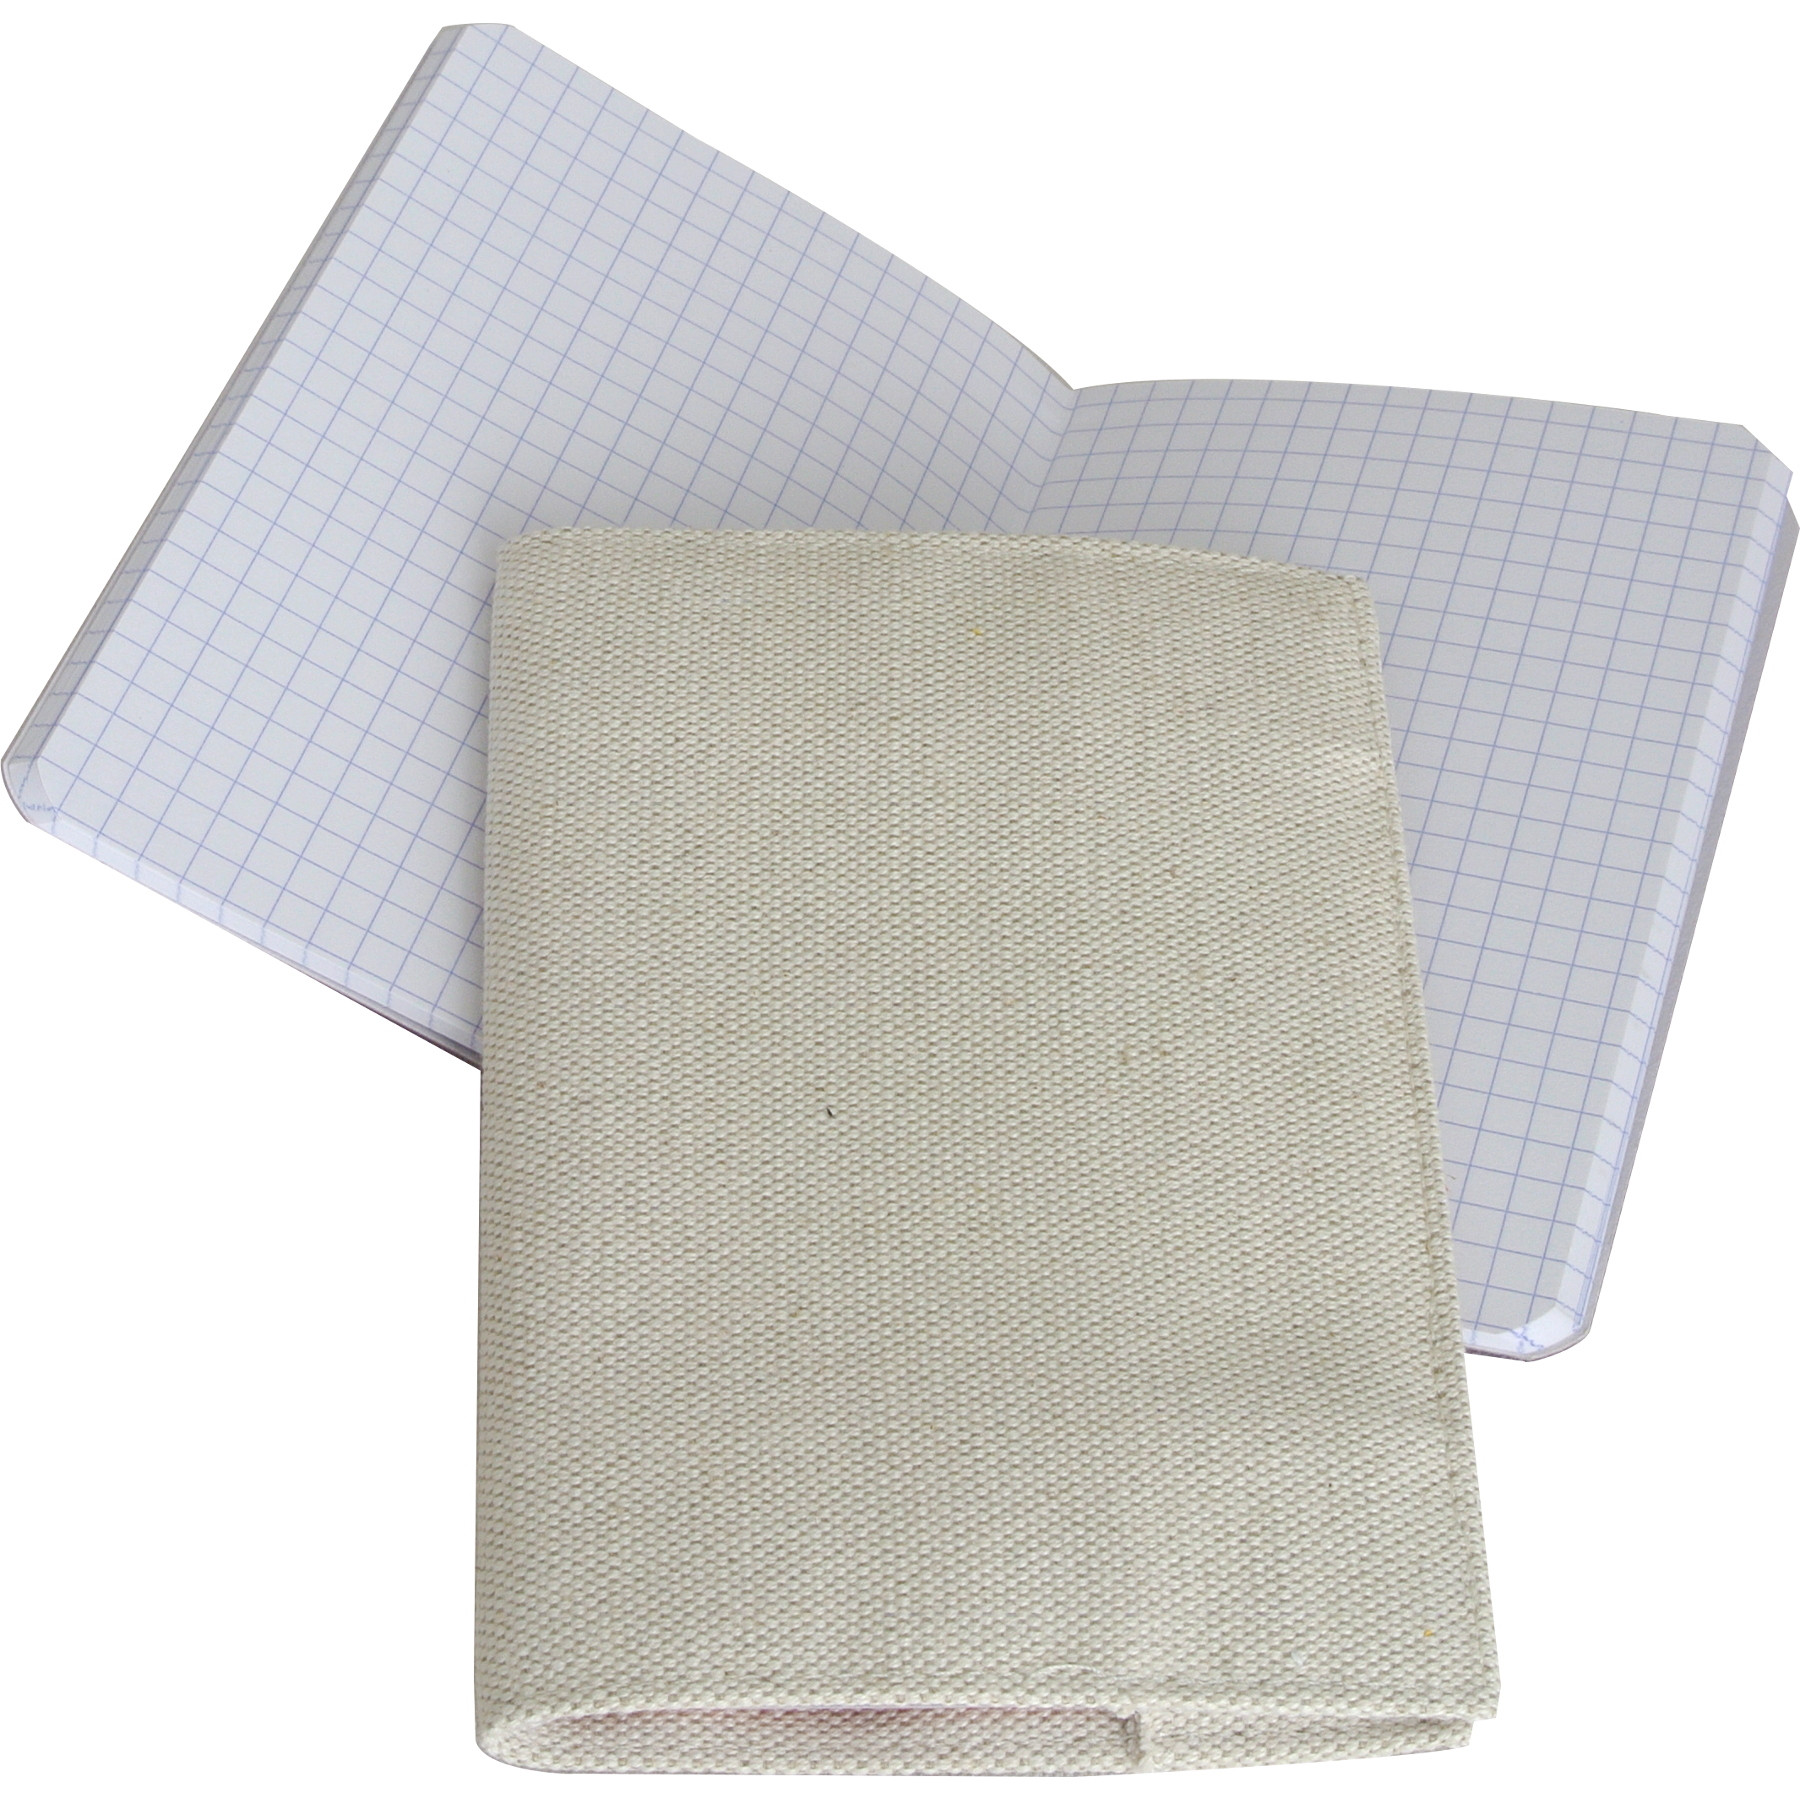 Small notebook OXFORD